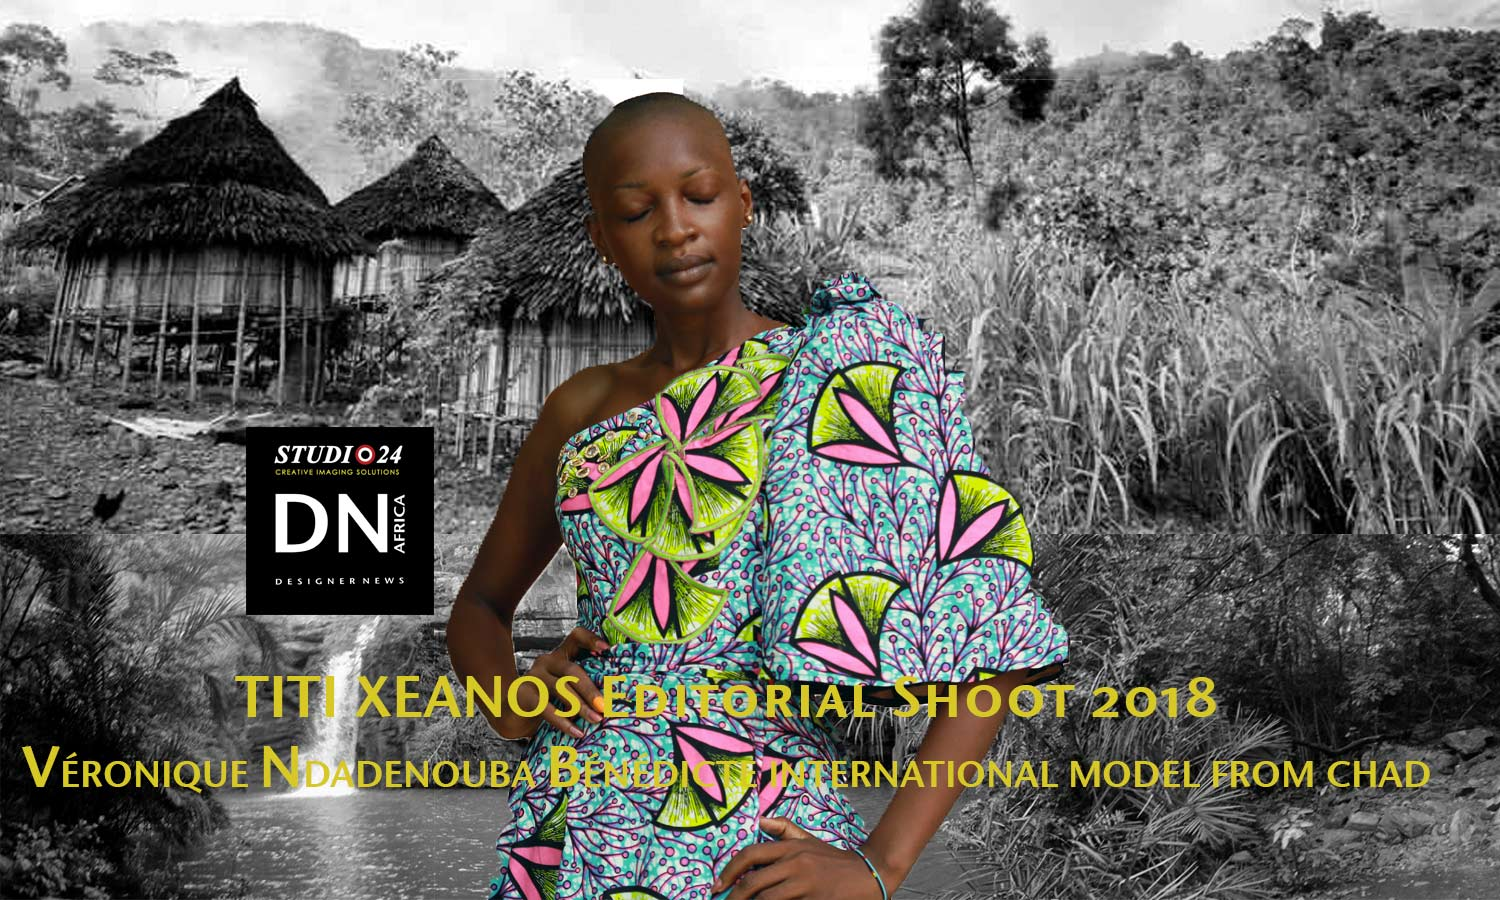 AFRICA FASHION STYLE MAGAZINE - KOFA 2nd Edition Organized by Hal Ebene Kobourou Fashion Awards from Parakou (Benin) – Designer TITI XENAOS from Ivory Coast - Model VÉRONIQUE NDADENOUBA BÉNÉDICTE from Chad – Exclusive contents for DN AFRICA and STUDIO 24 NIGERIA